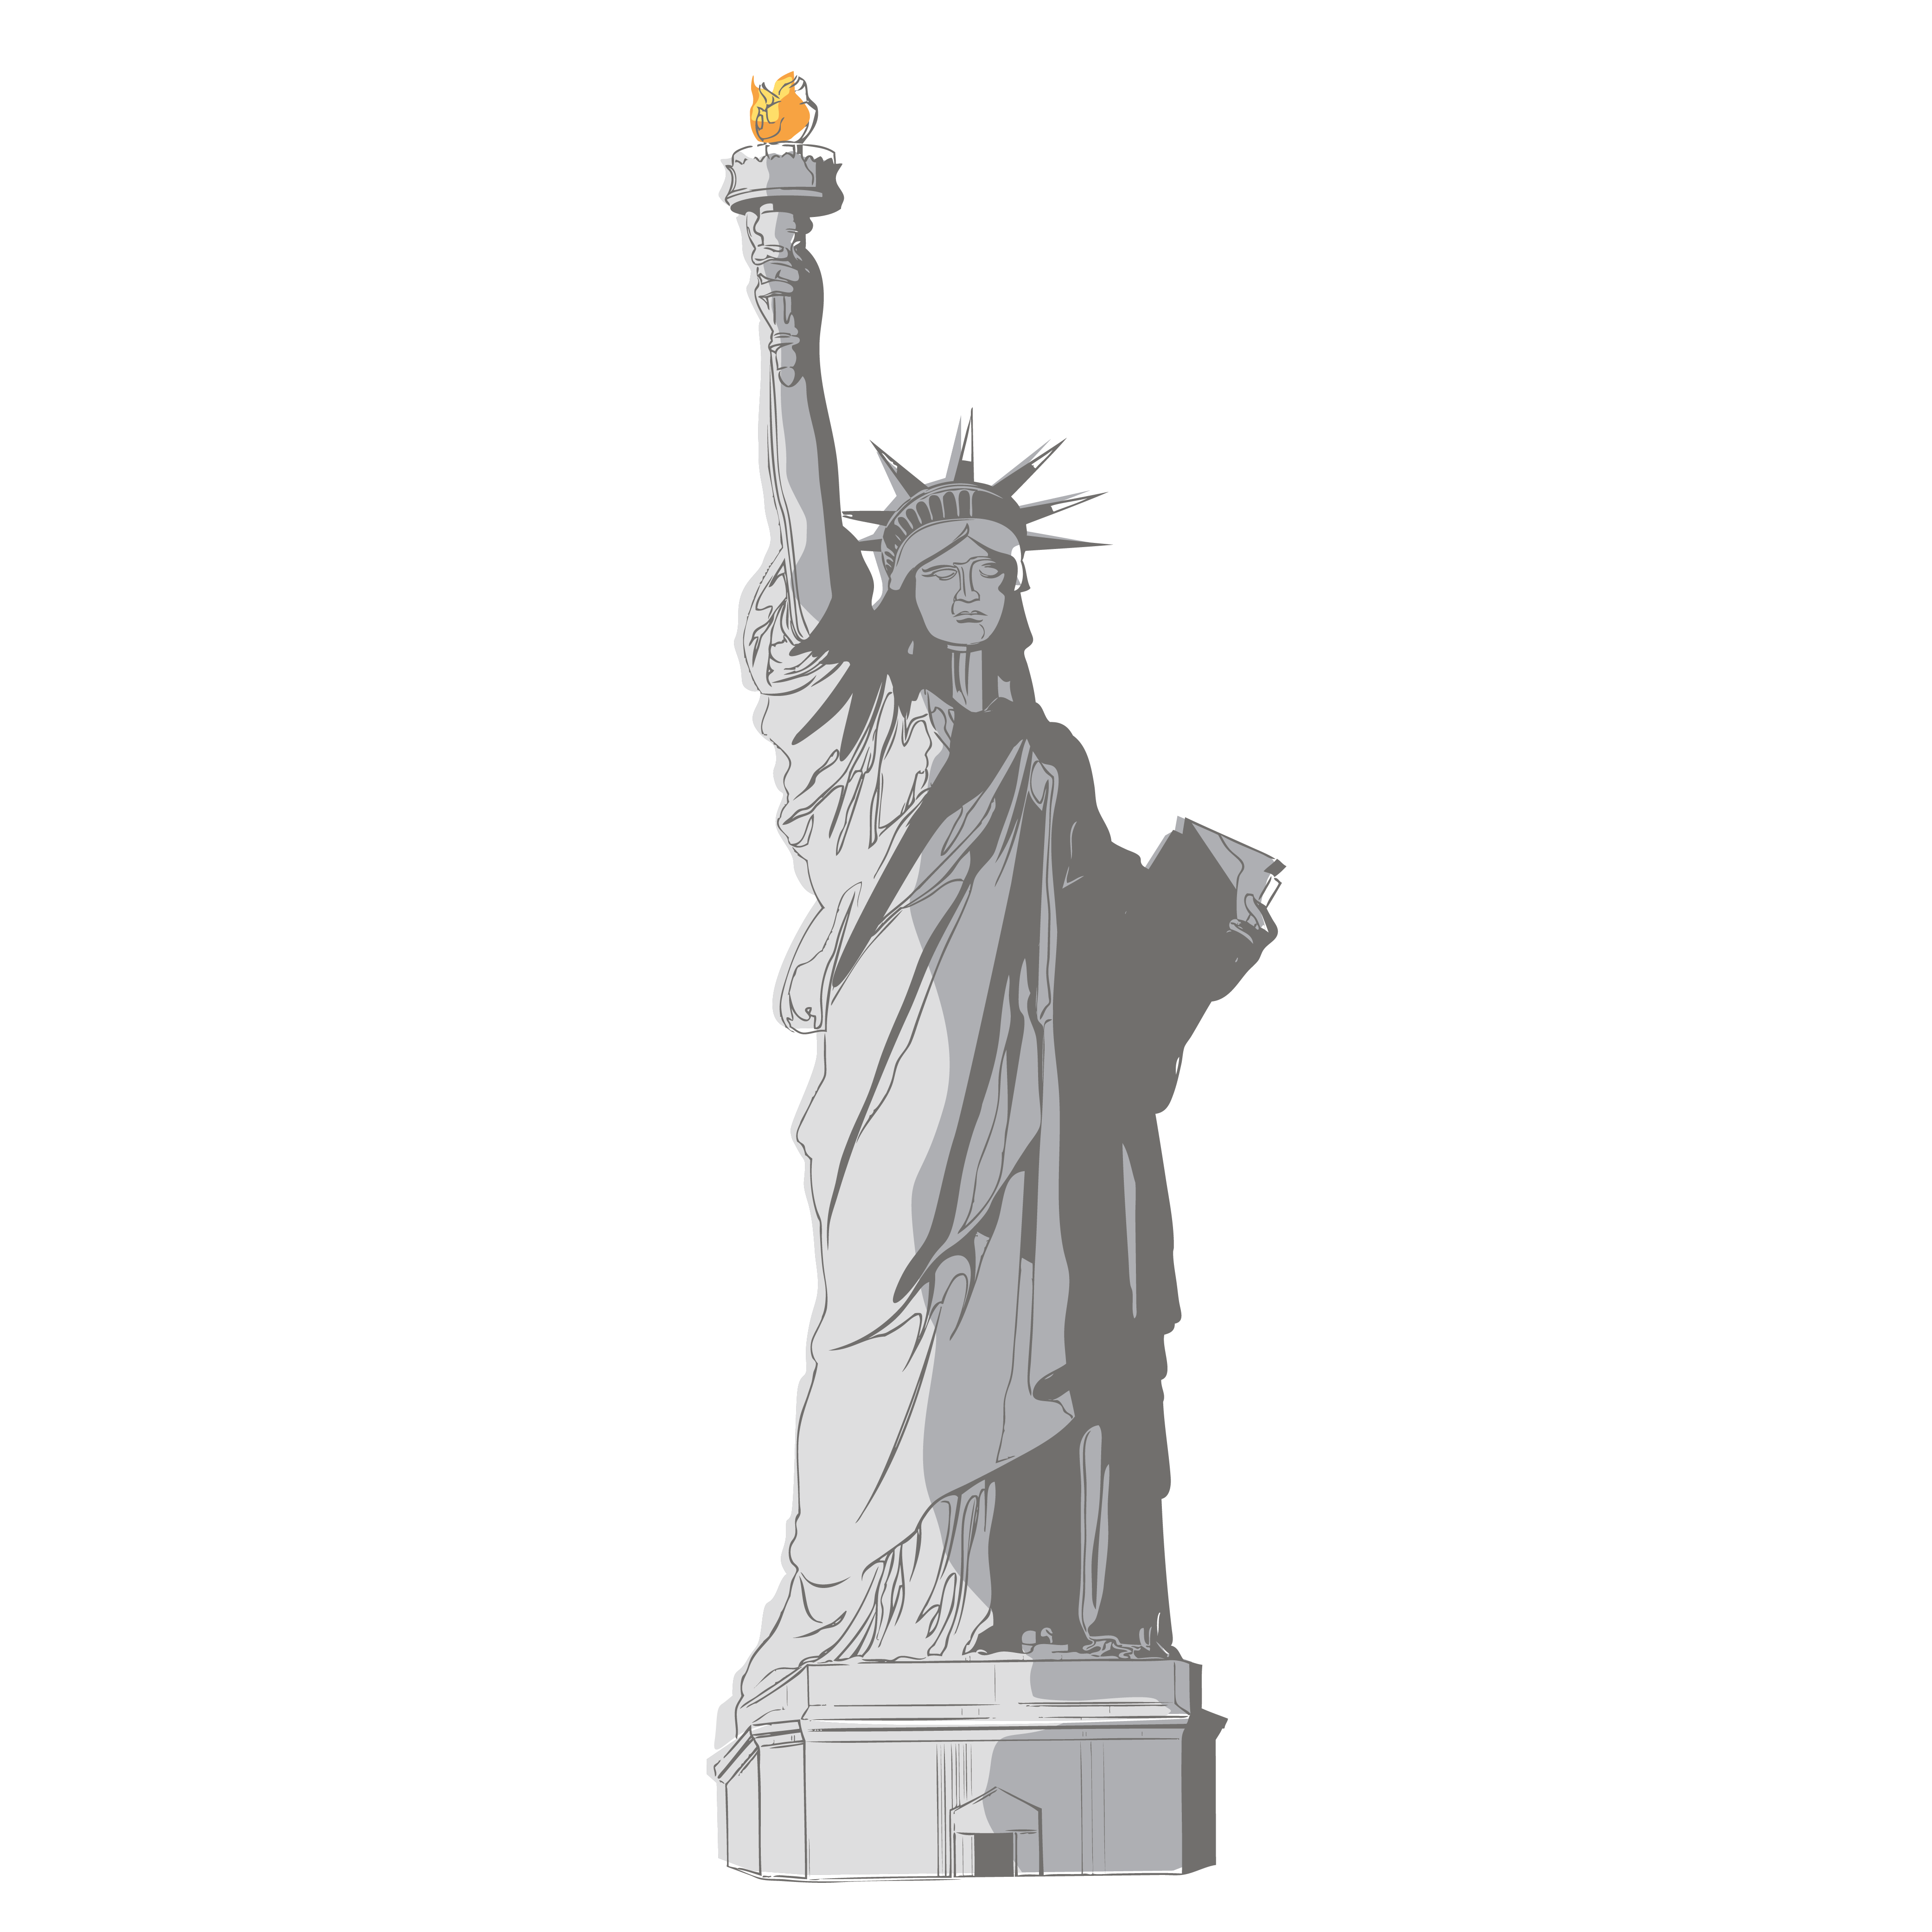 Statue of liberty independence day black and white clipart graphic transparent download Free PNG USA Independence Day | Konfest graphic transparent download